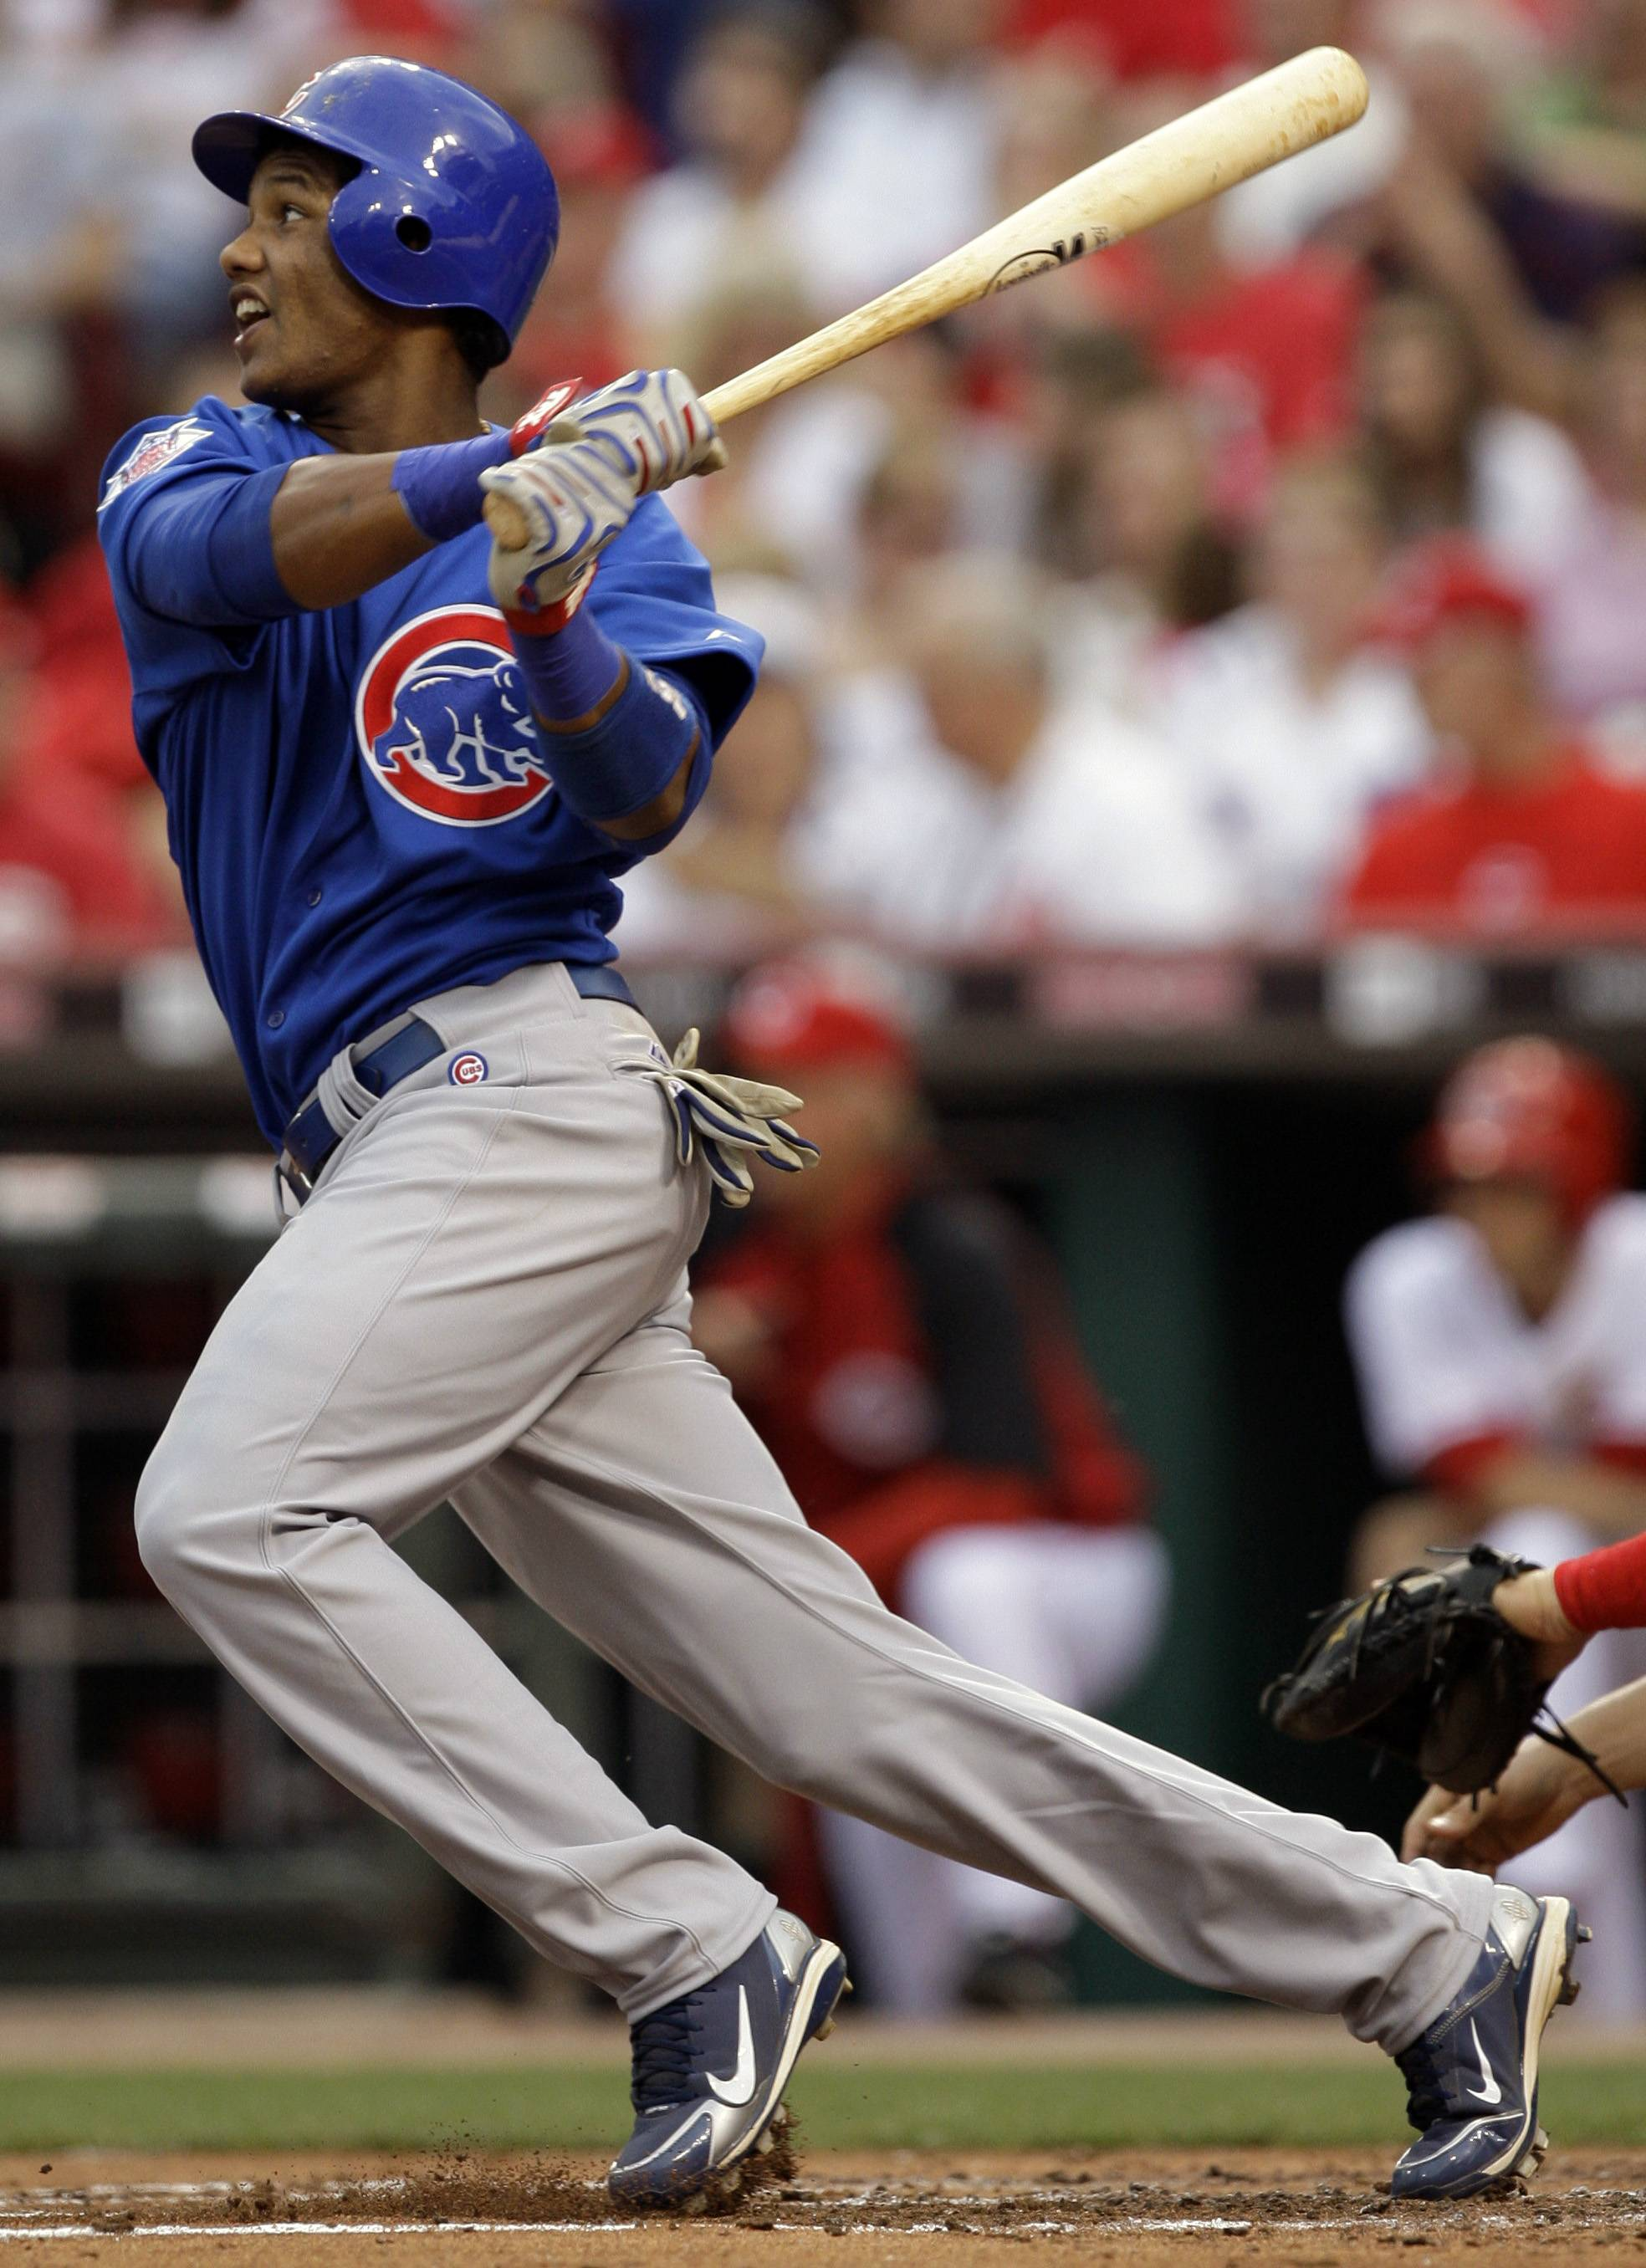 Starlin Castro started his big-league career four years ago with a 3-run home run off Cincinnati Reds starting pitcher Homer Bailey. Will he remain part of Cubs history?